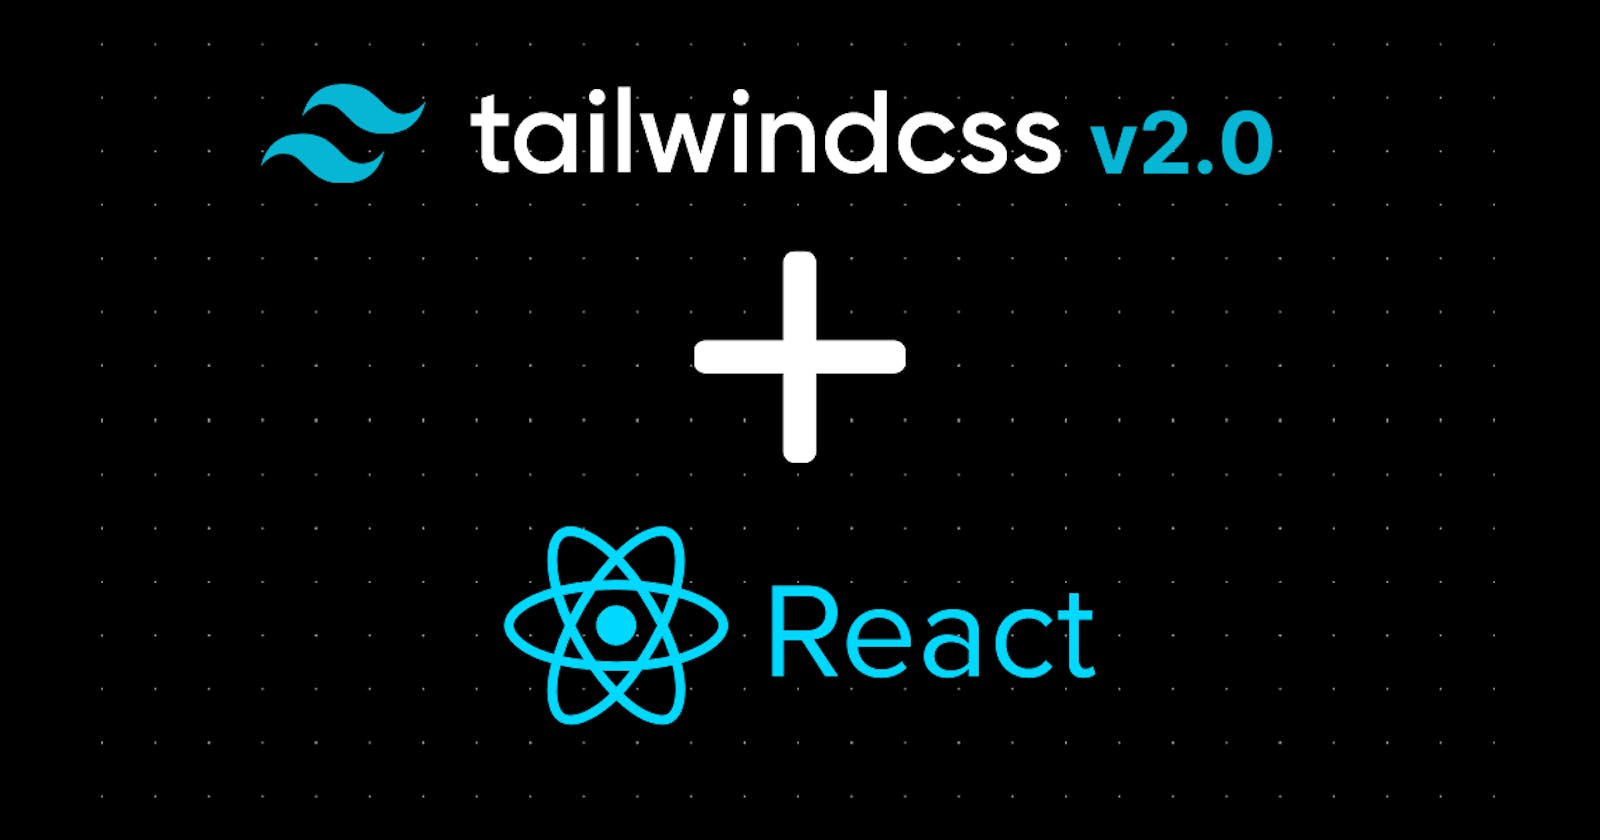 Setting up Tailwind CSS v2.0 with Create React App